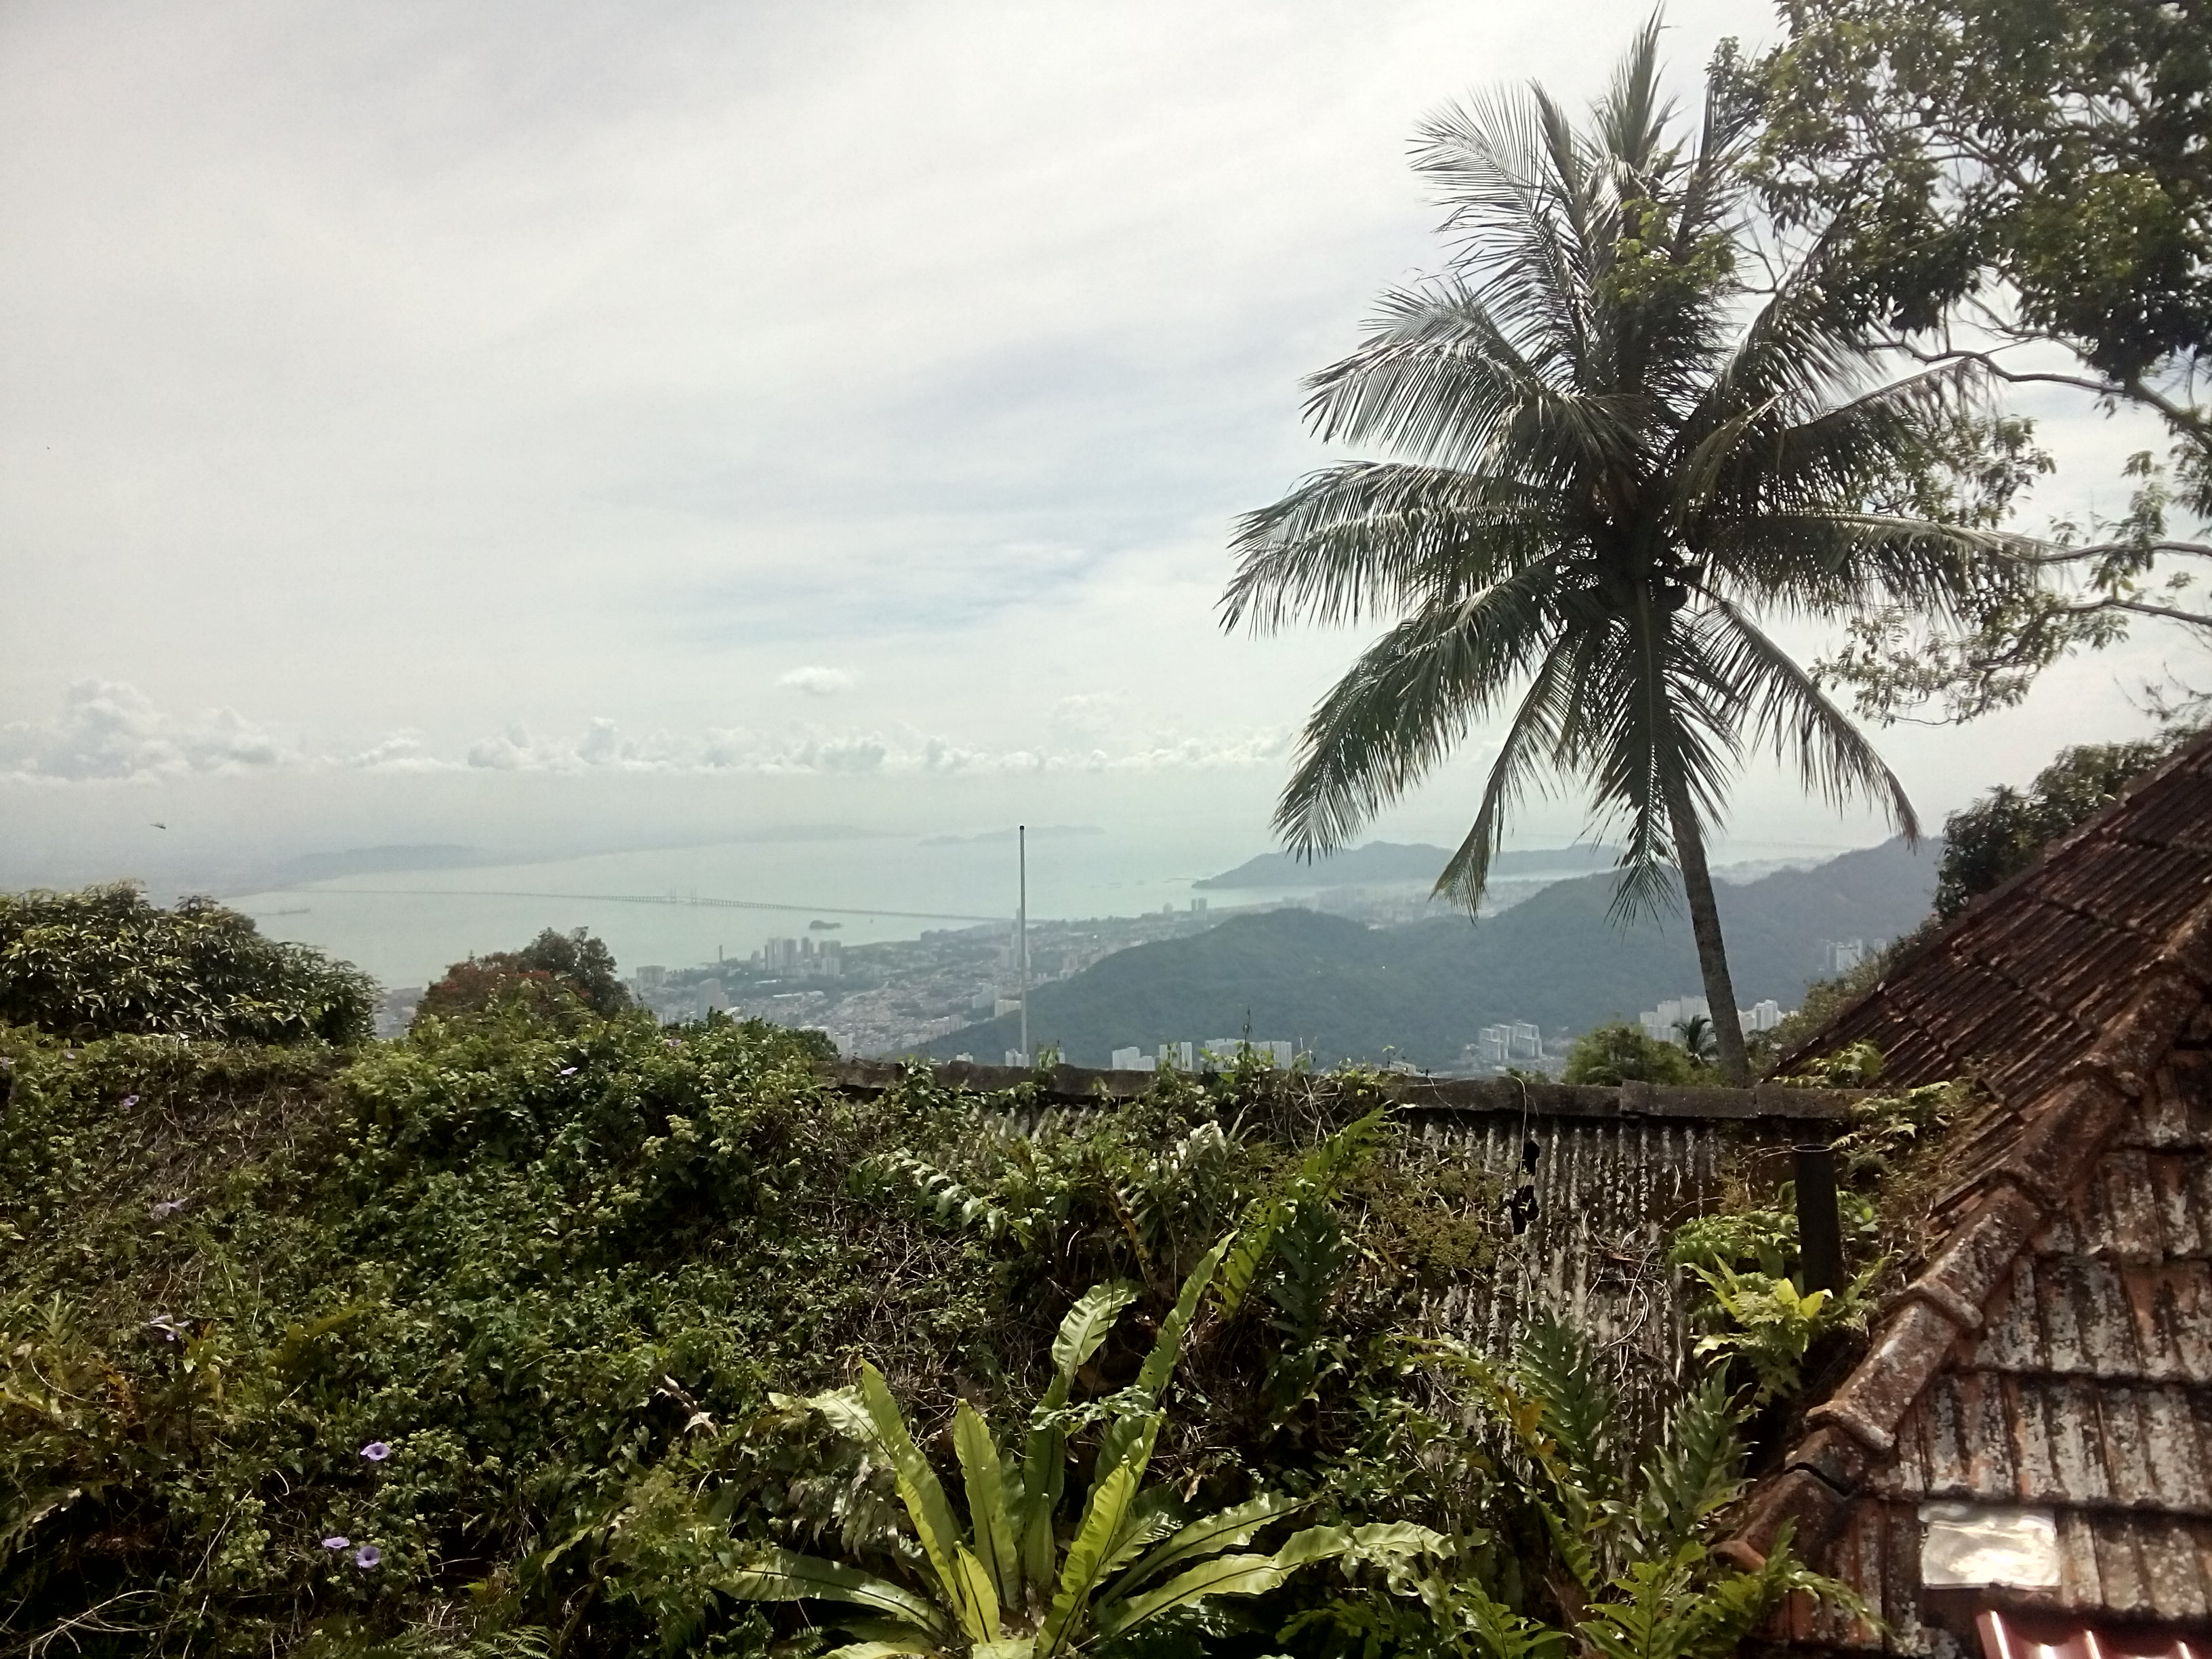 Palm tree in foreground and view of sea and distant hills and city